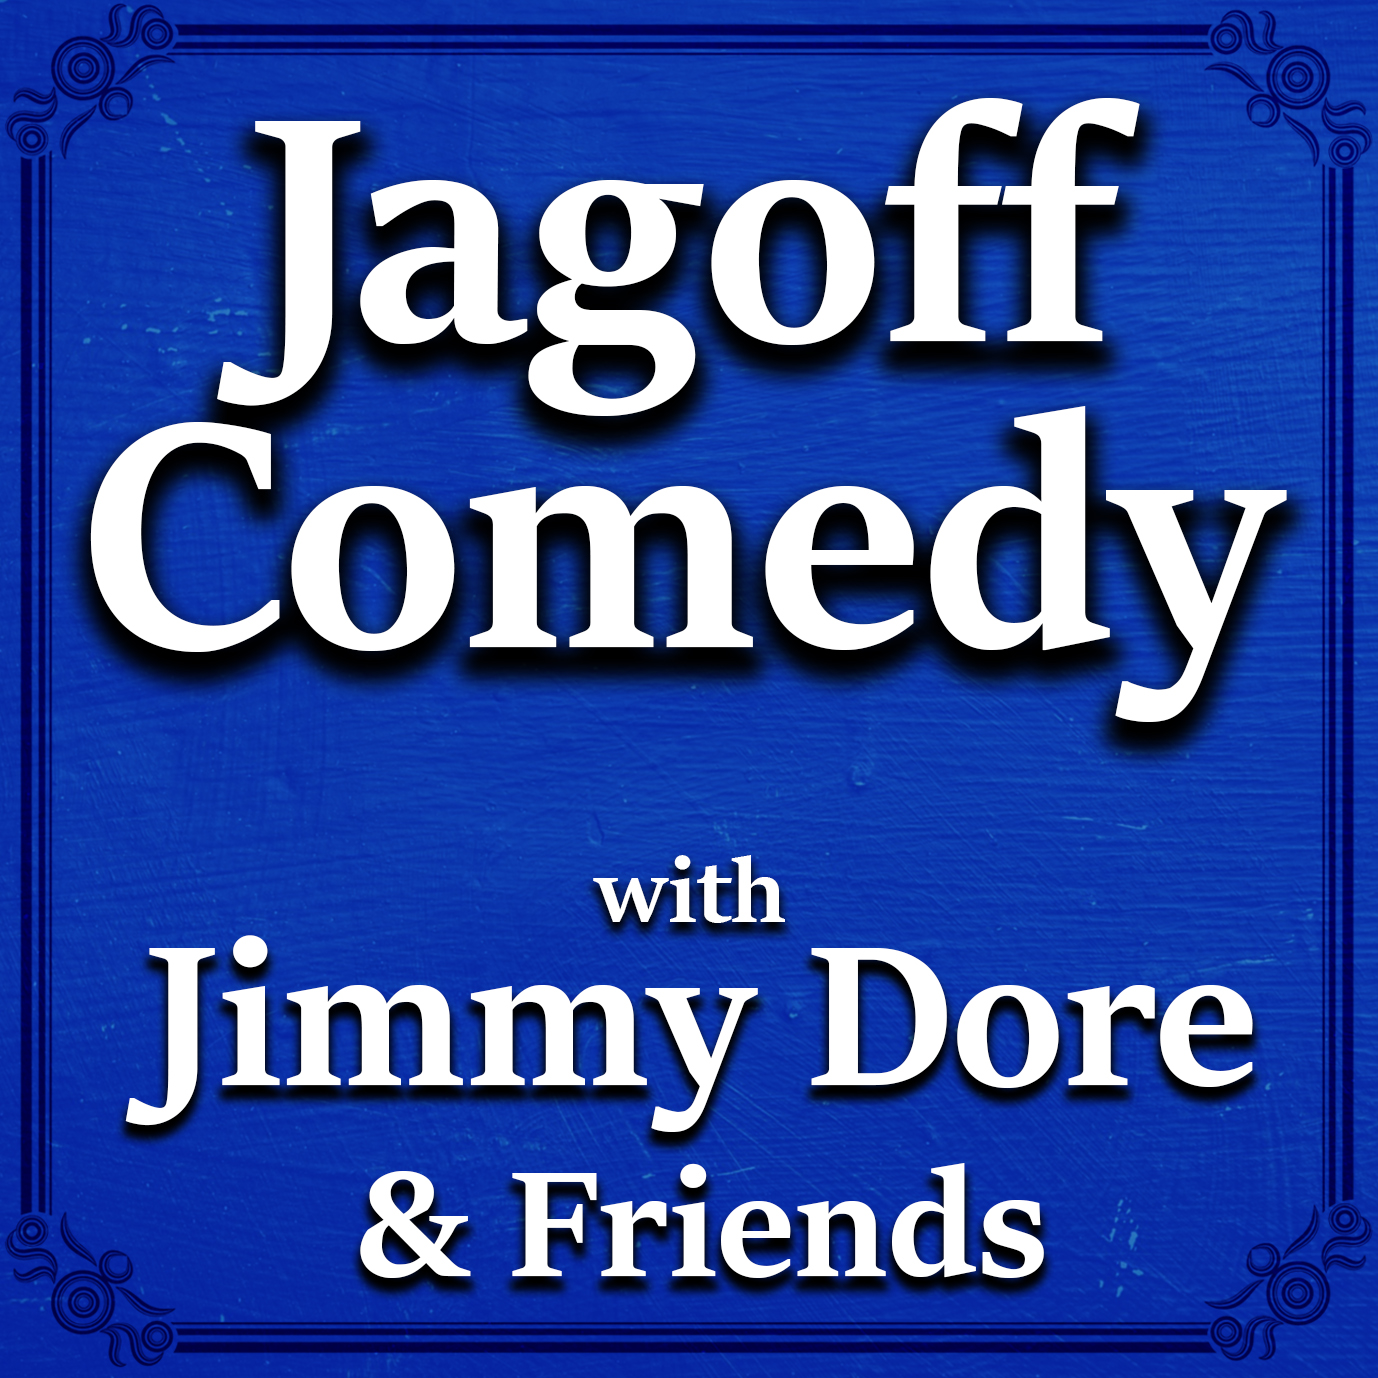 bb7121d1a9b Jagoff Comedy with Jimmy Dore   Friends